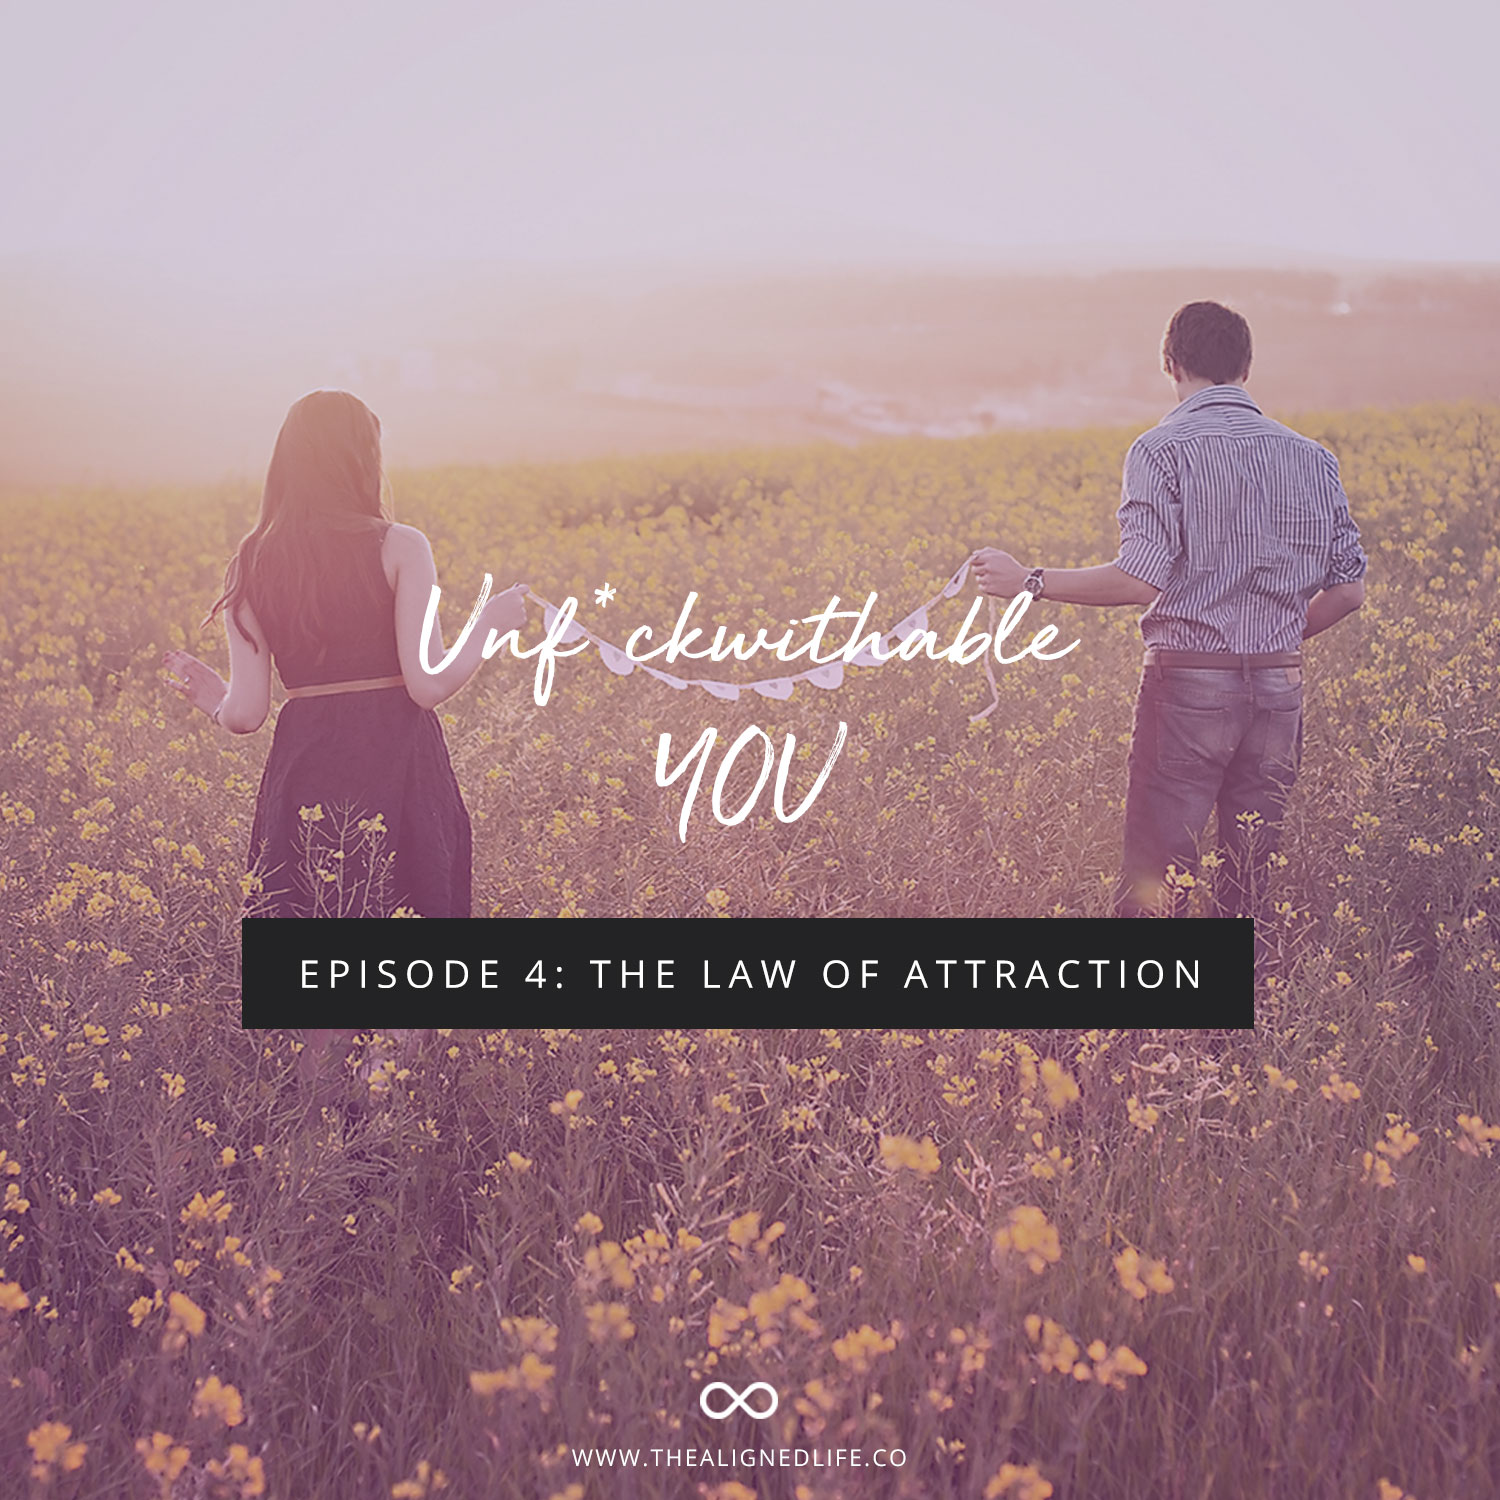 Unf*ckwithable You Episode 4 The Law of Attraction